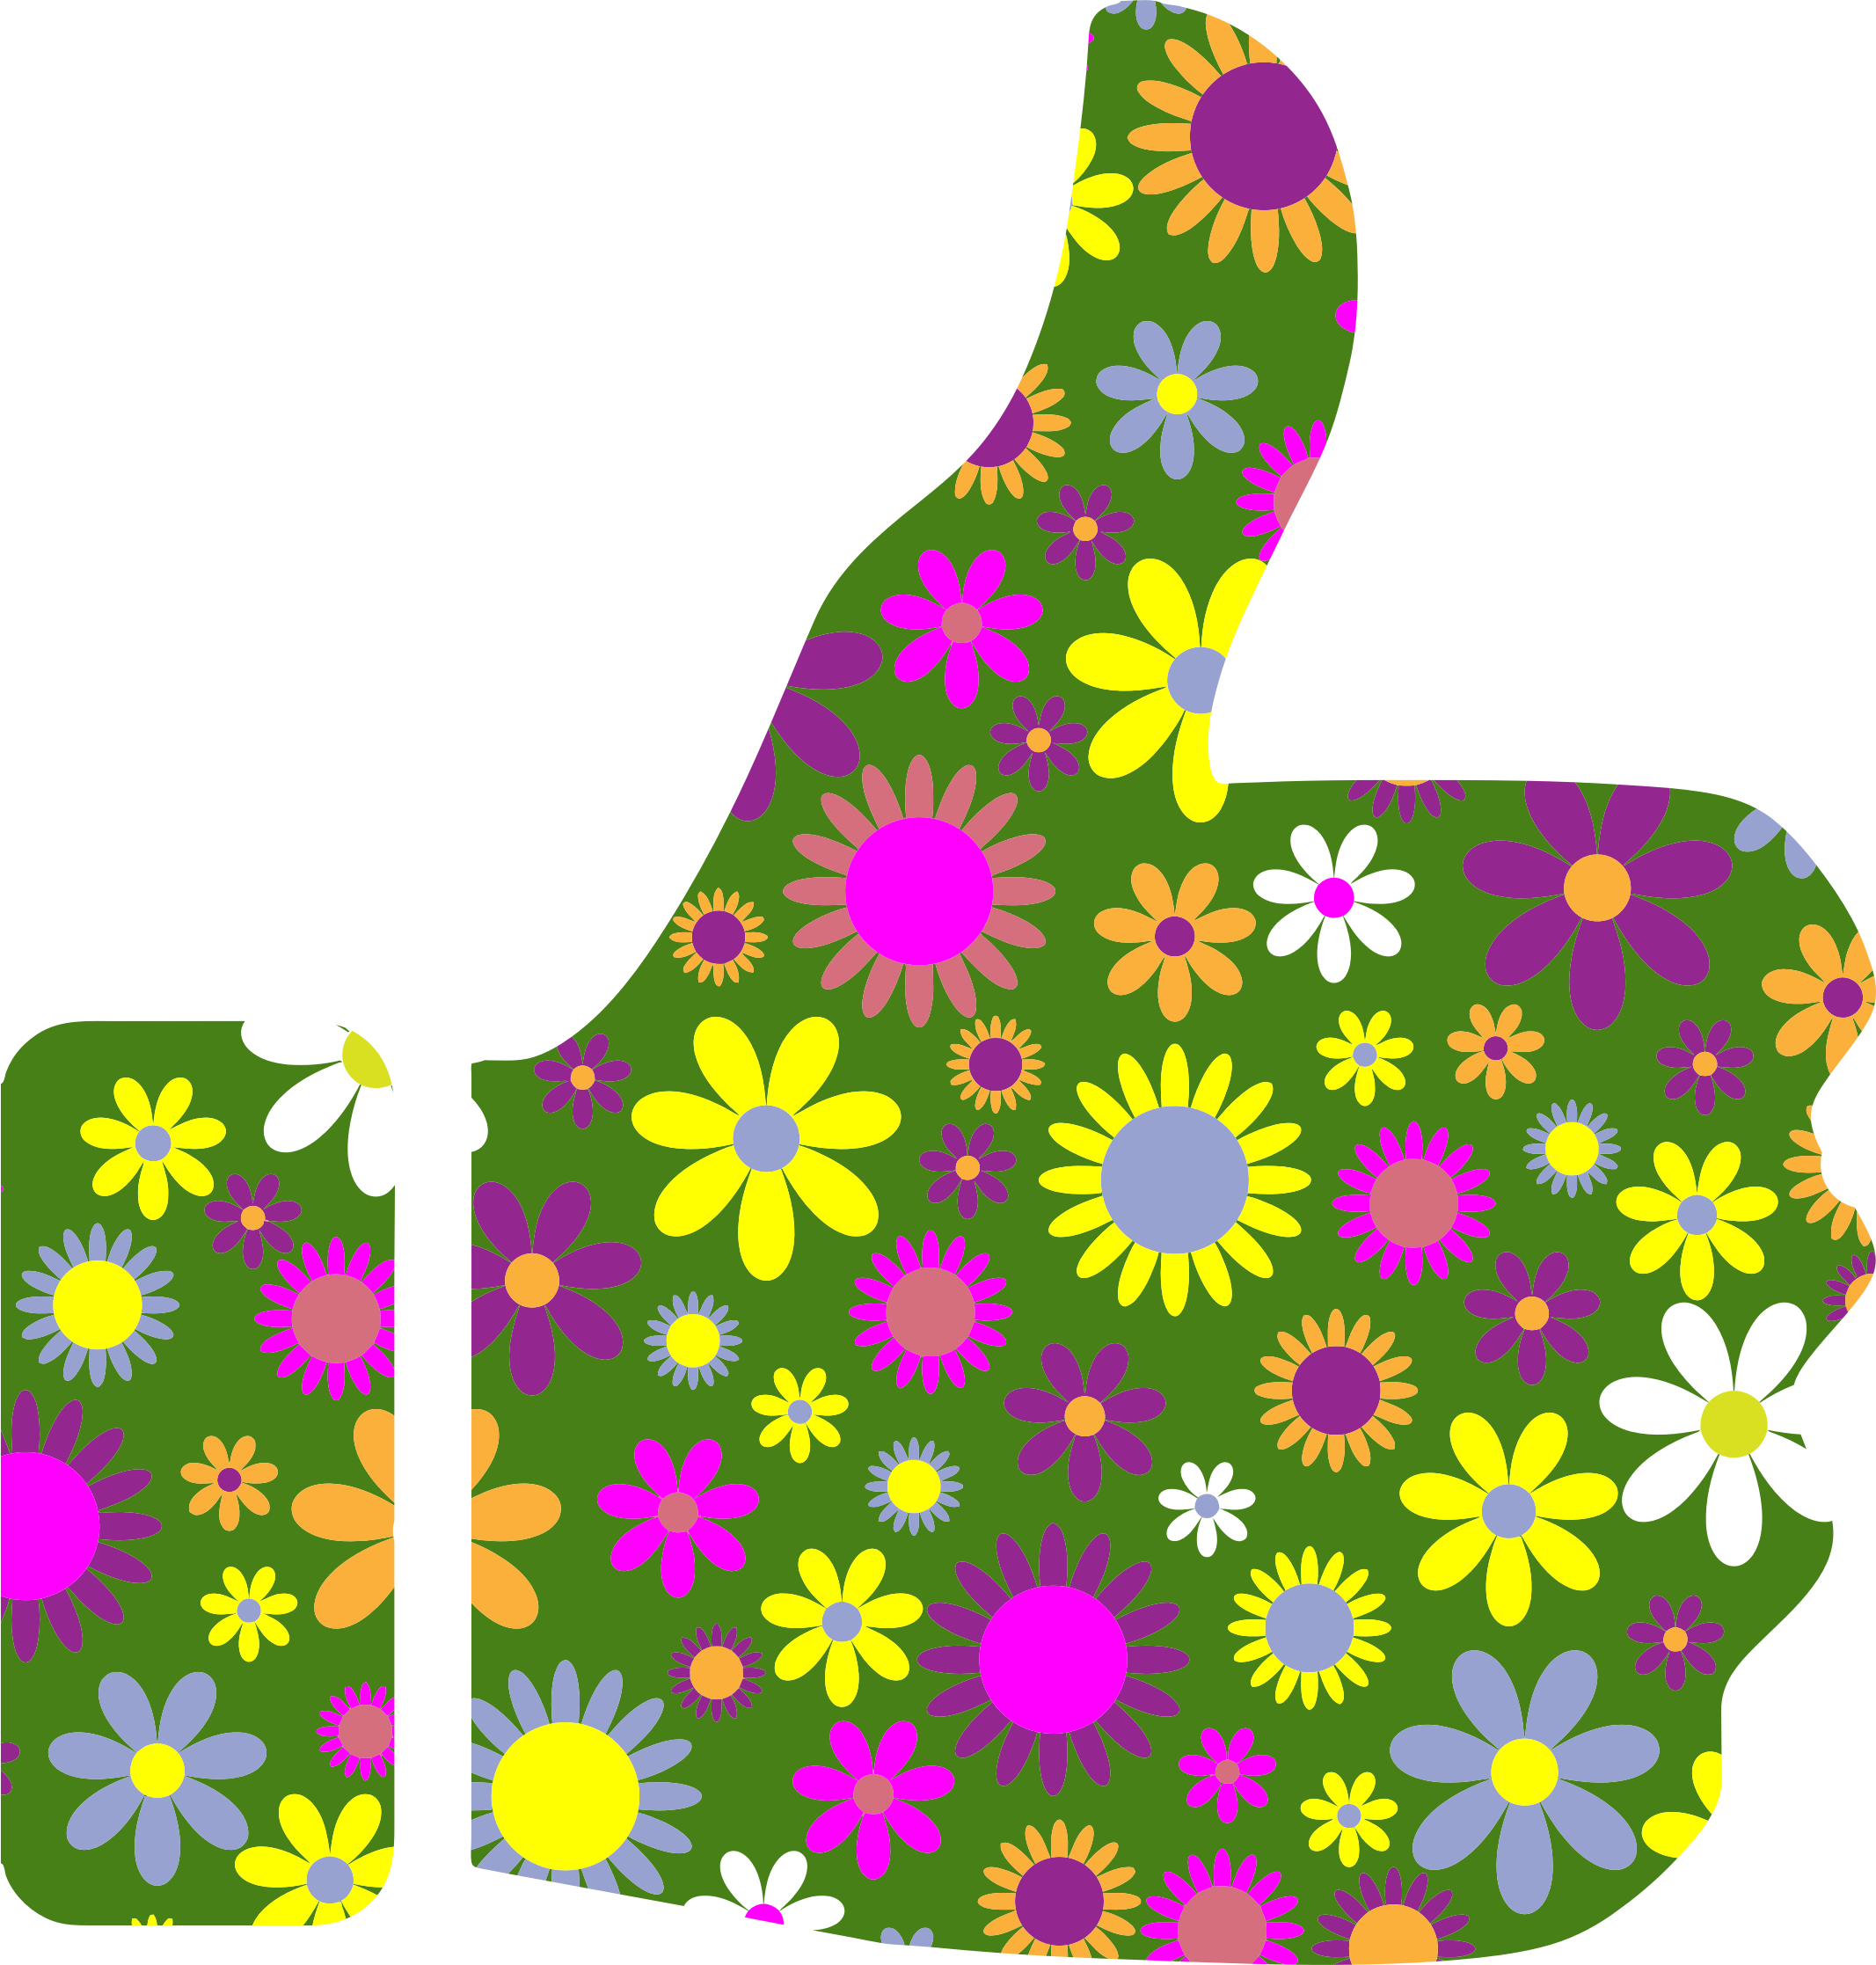 Retro Floral Thumbs Up by GDJ